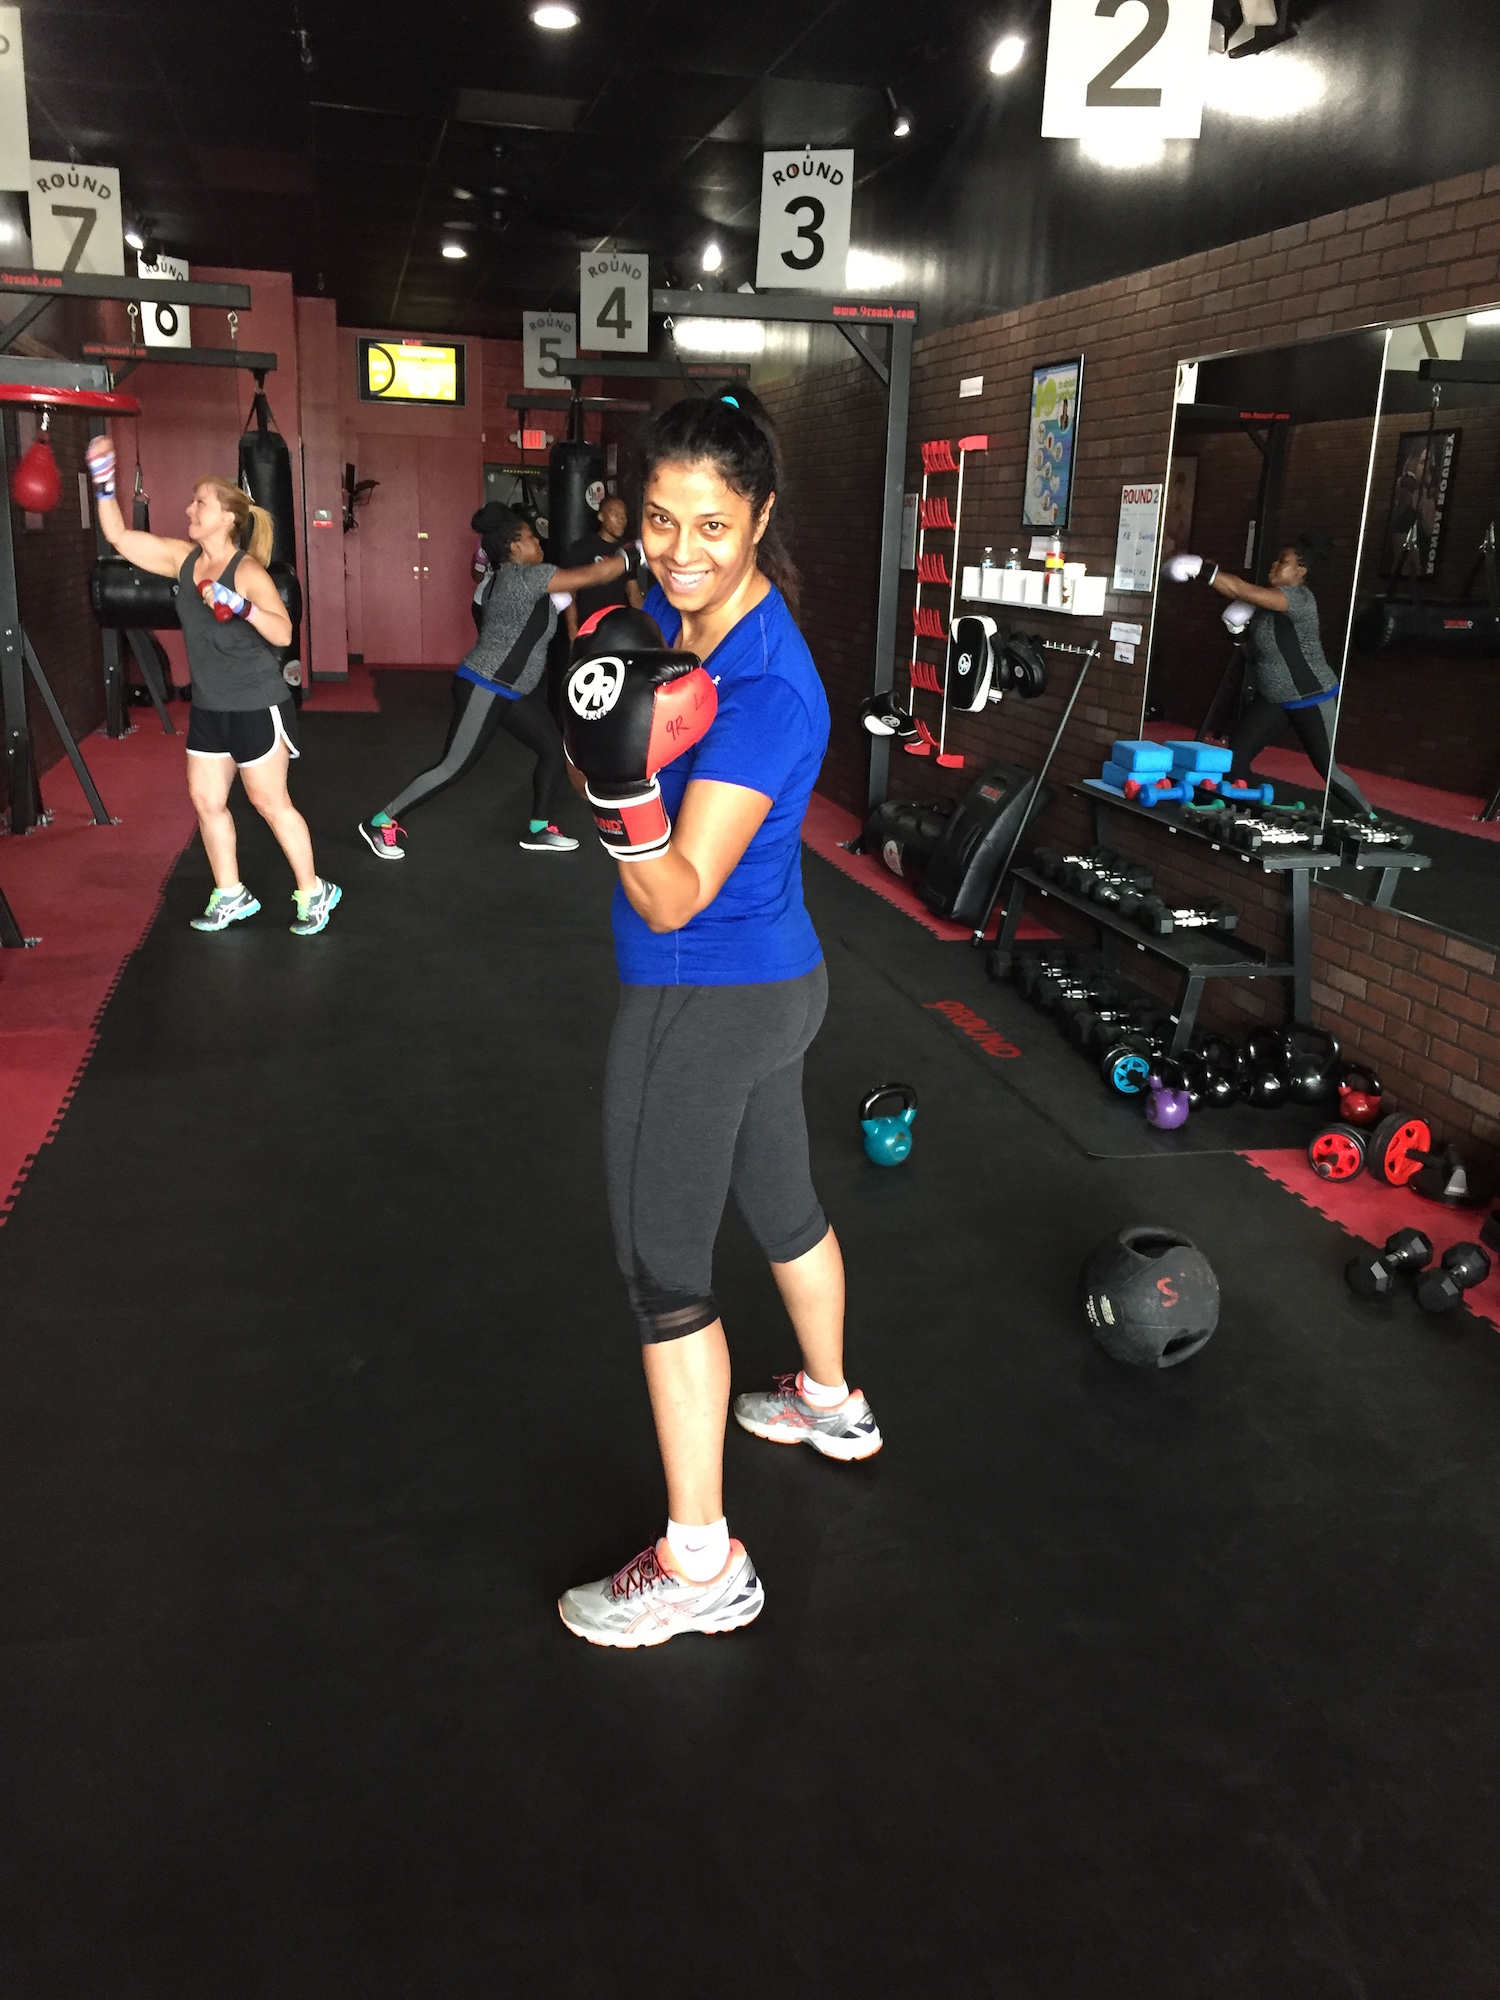 Smart Social Selling Lessons From My First Kickboxing Class